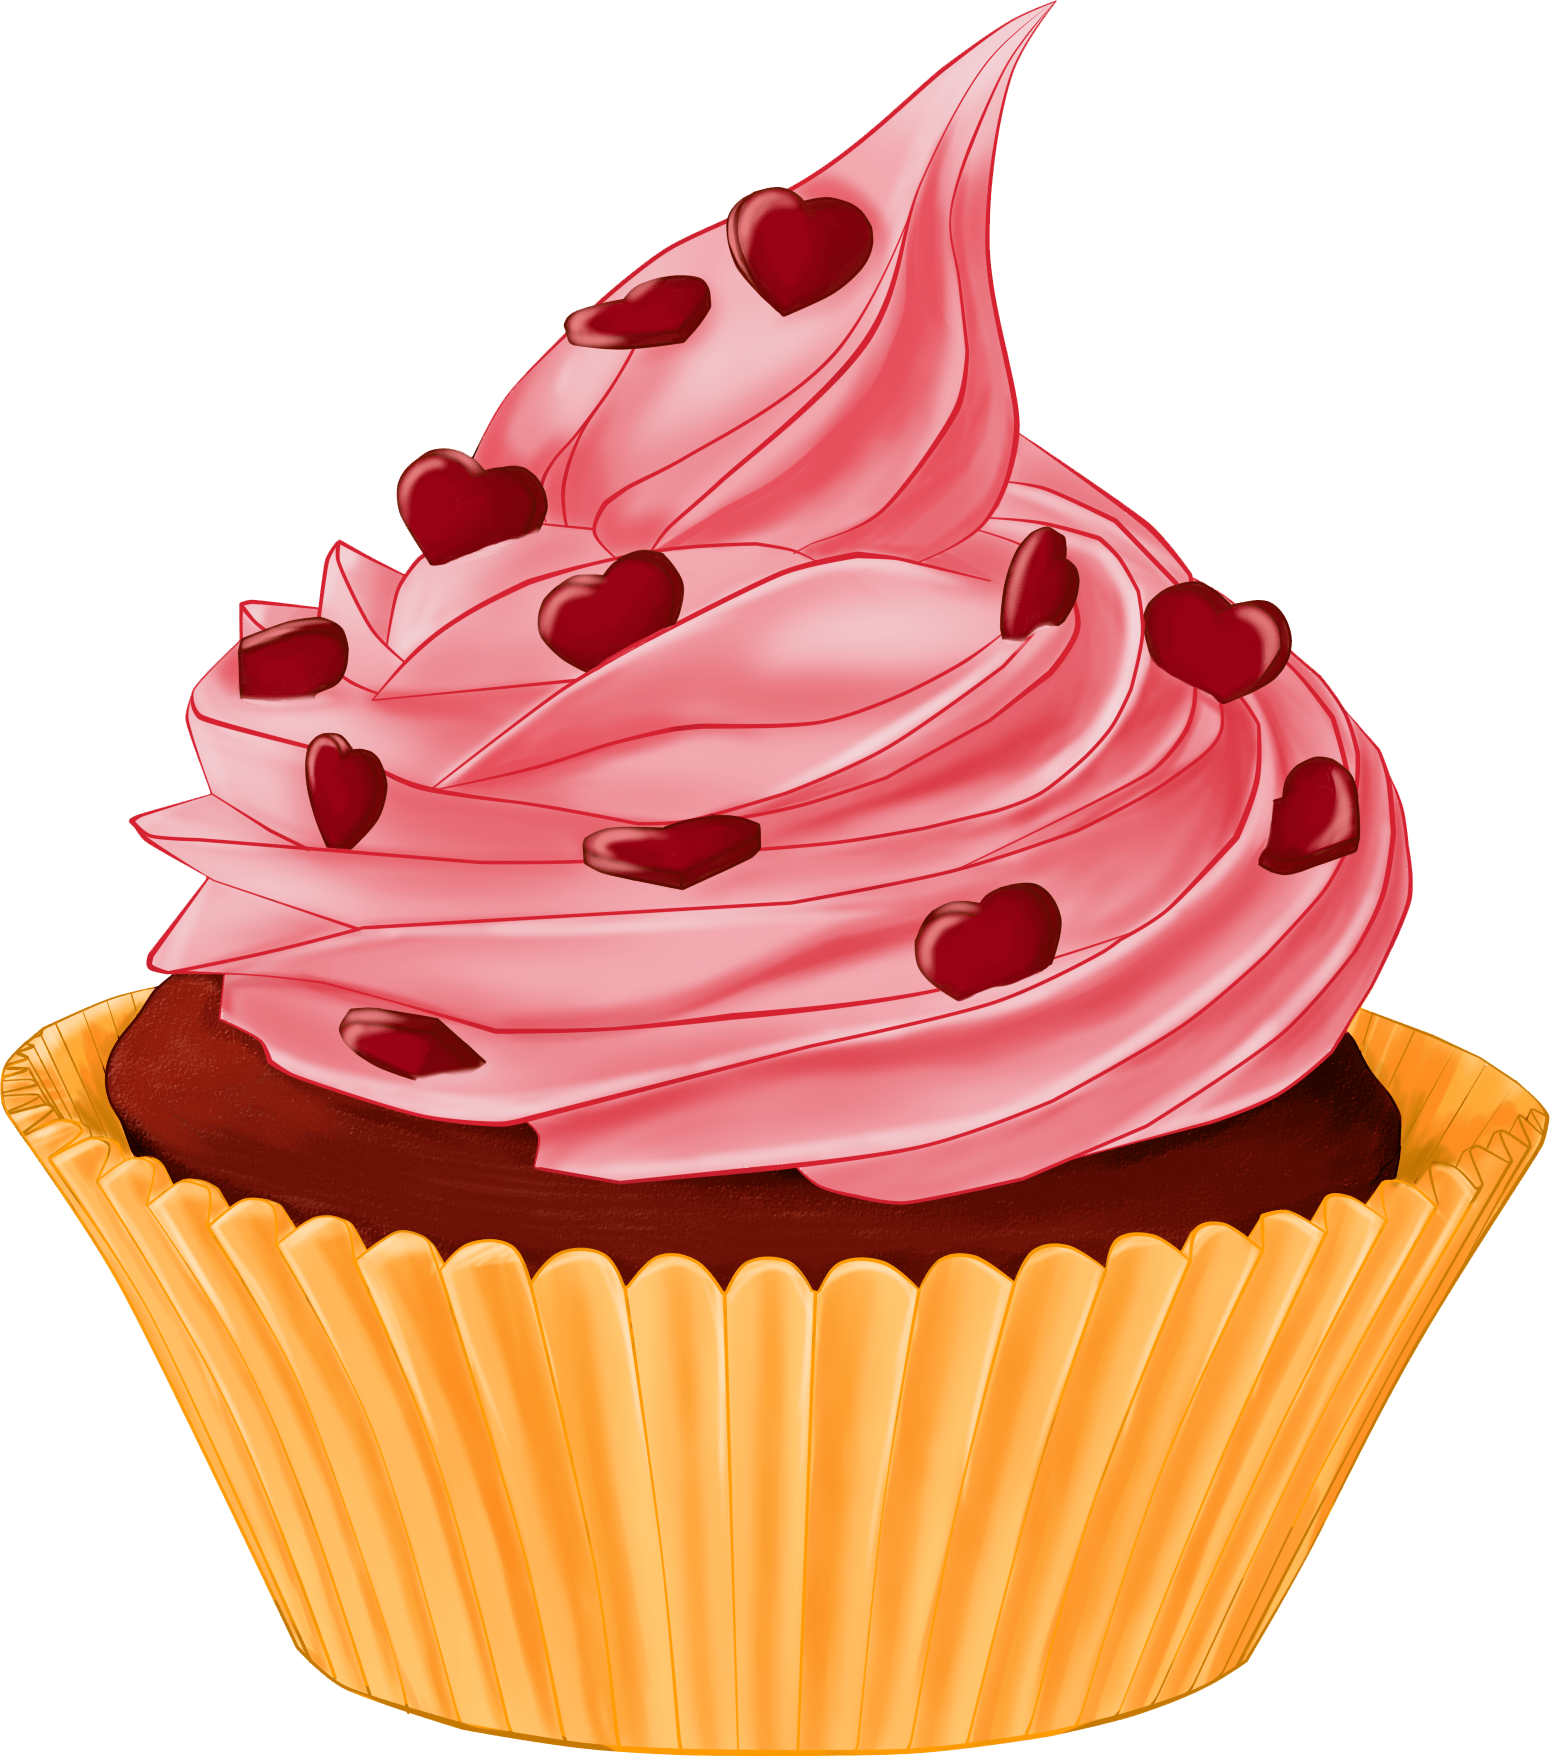 Vector cupcakes cherry top. Cartoon cupcake heart topping